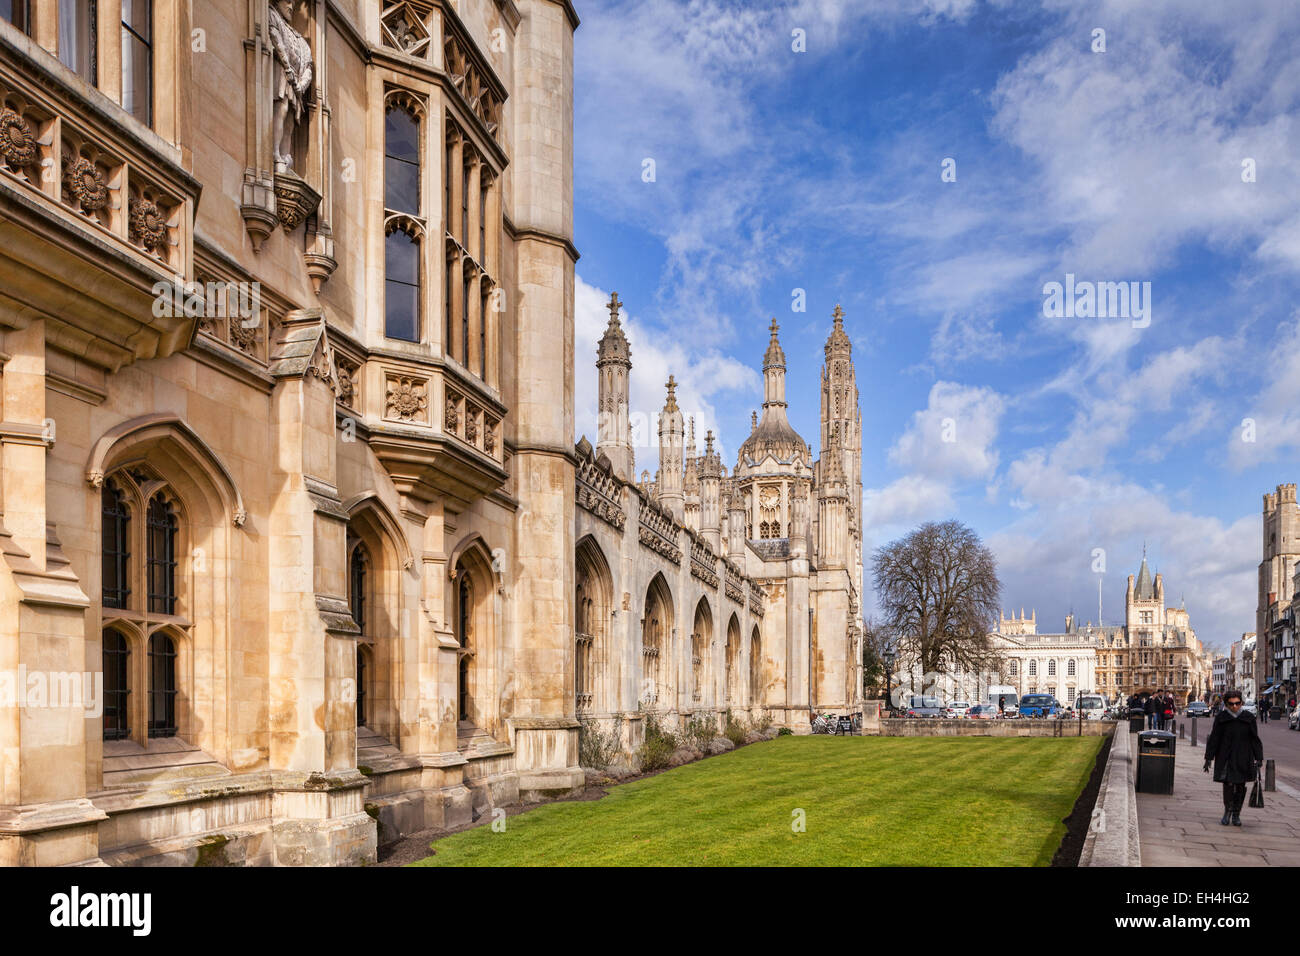 The facade of King's College, Cambridge, looking along King's Parade to the Senate House and Gonville and - Stock Image